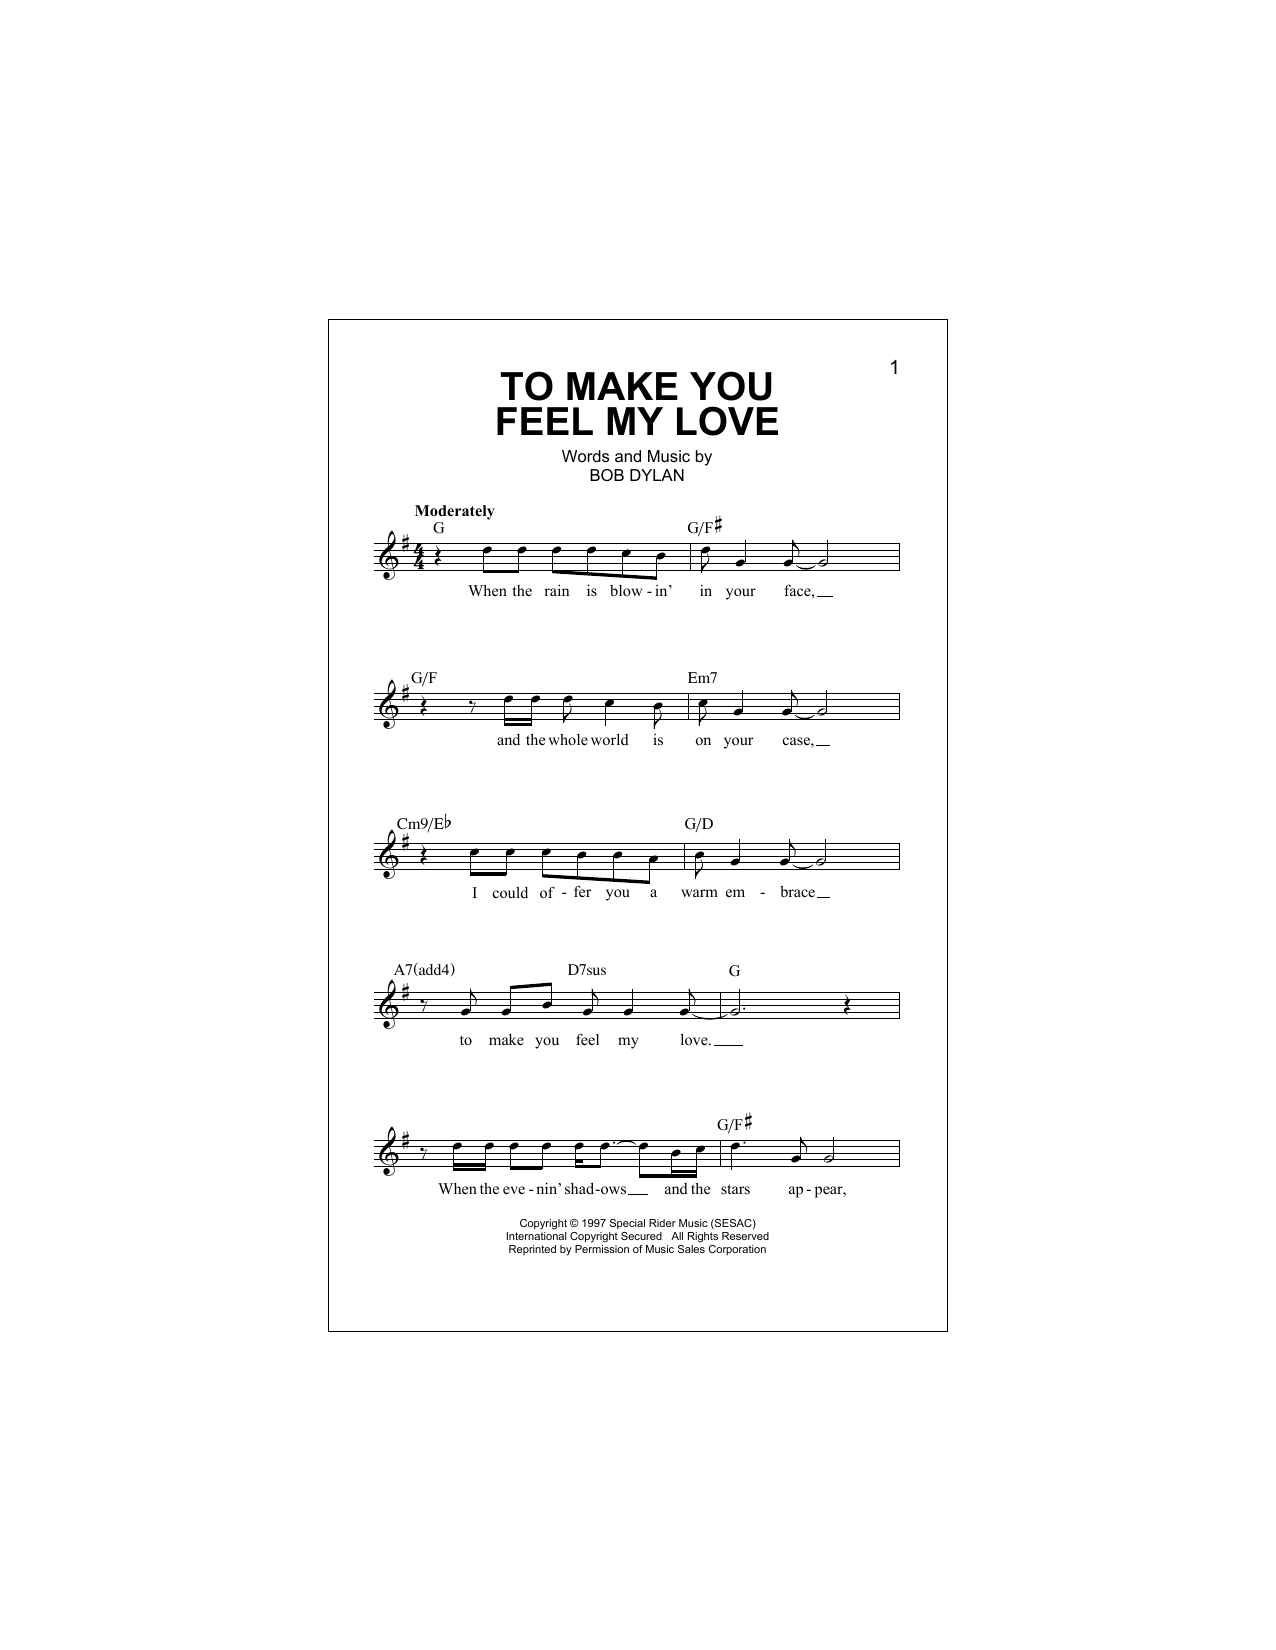 To make you feel my love chords by billy joel melody line lyrics billy joel to make you feel my love melody line lyrics chords hexwebz Image collections